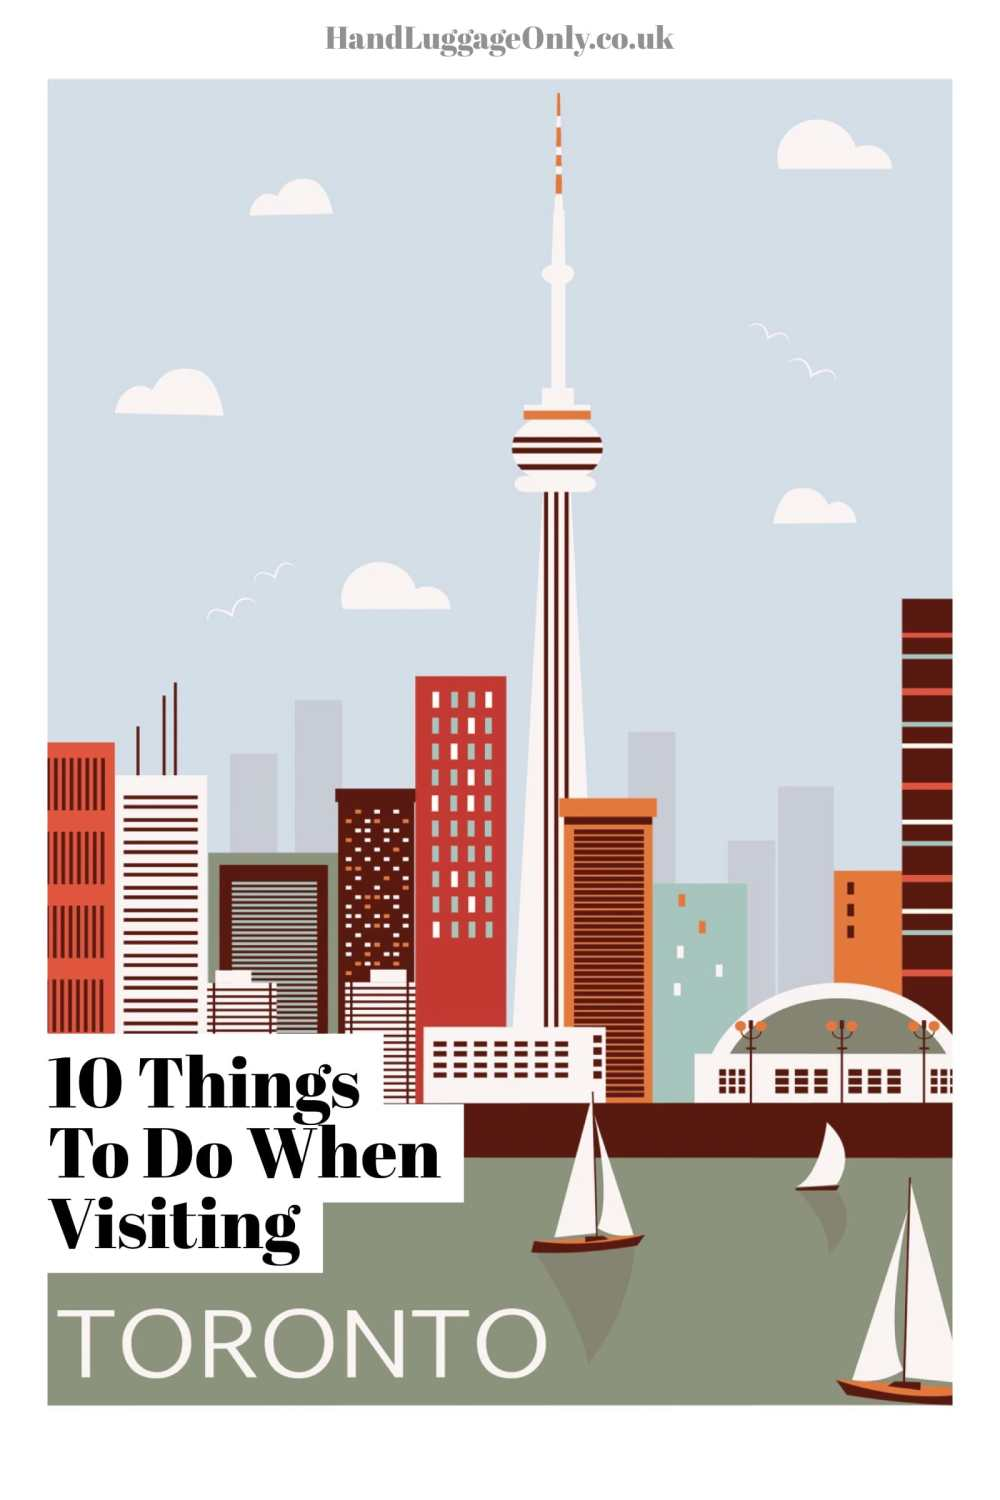 10 Things To Do When Visiting Toronto